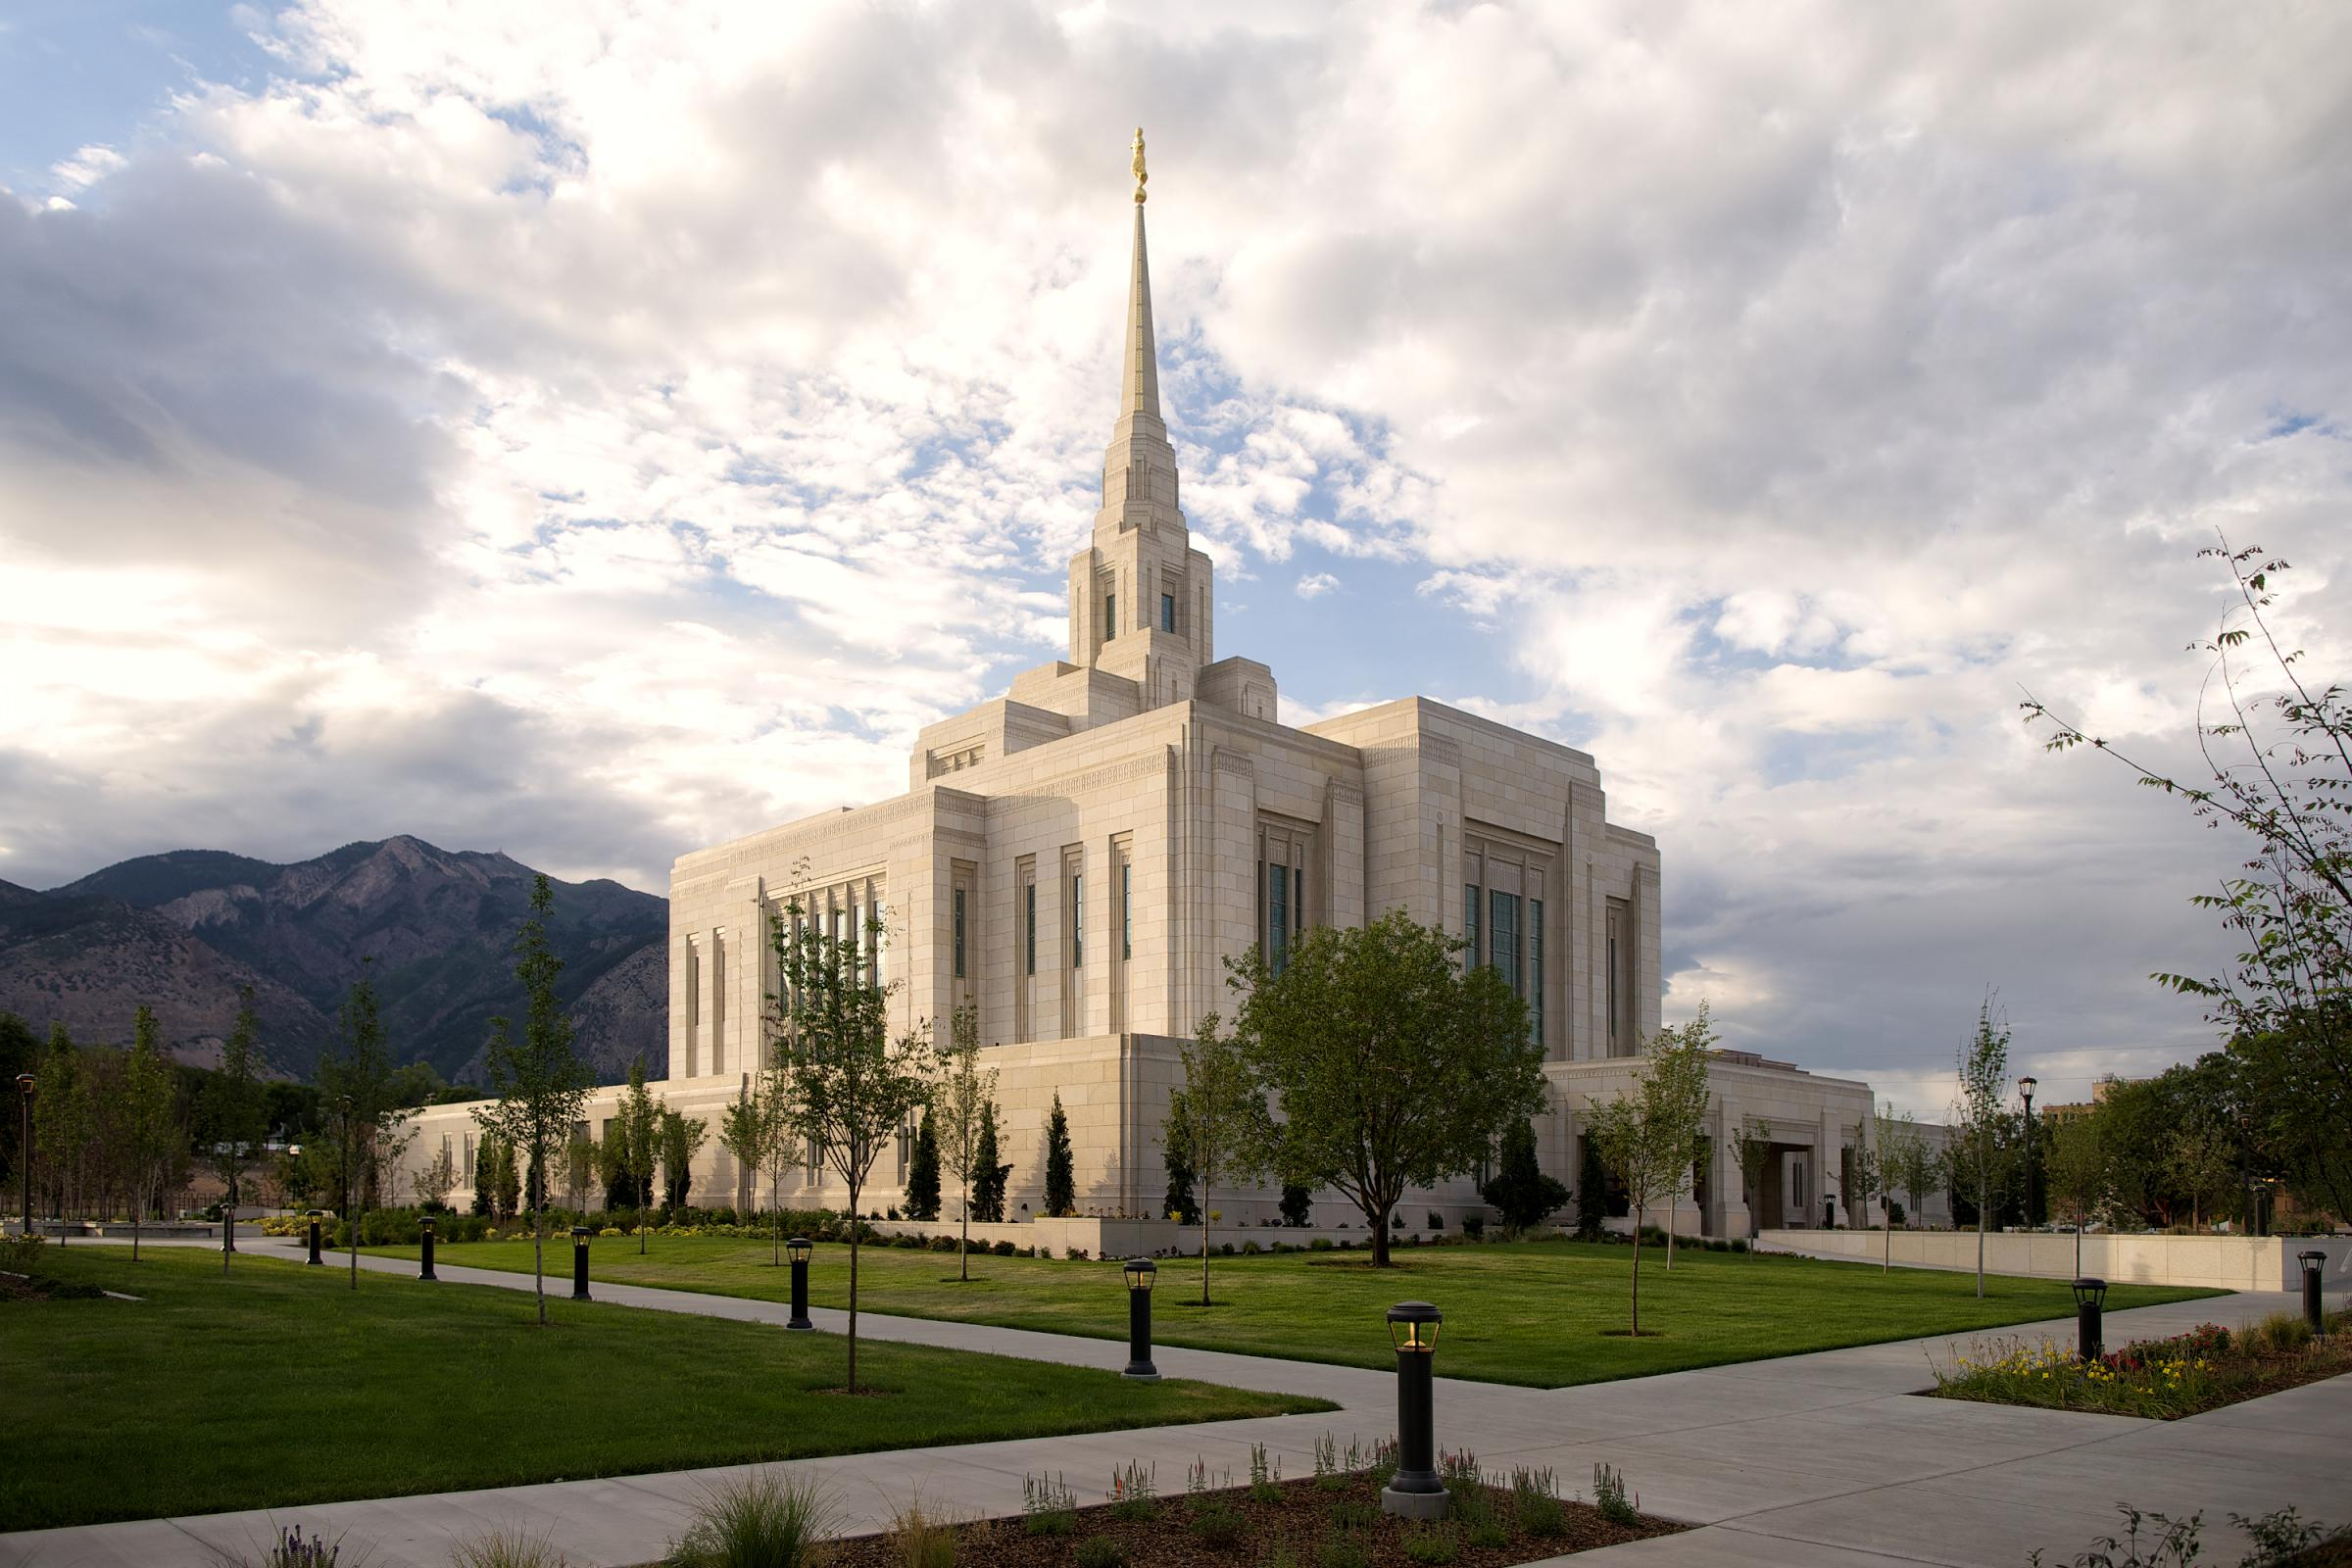 Lds marriage counseling ogden utah